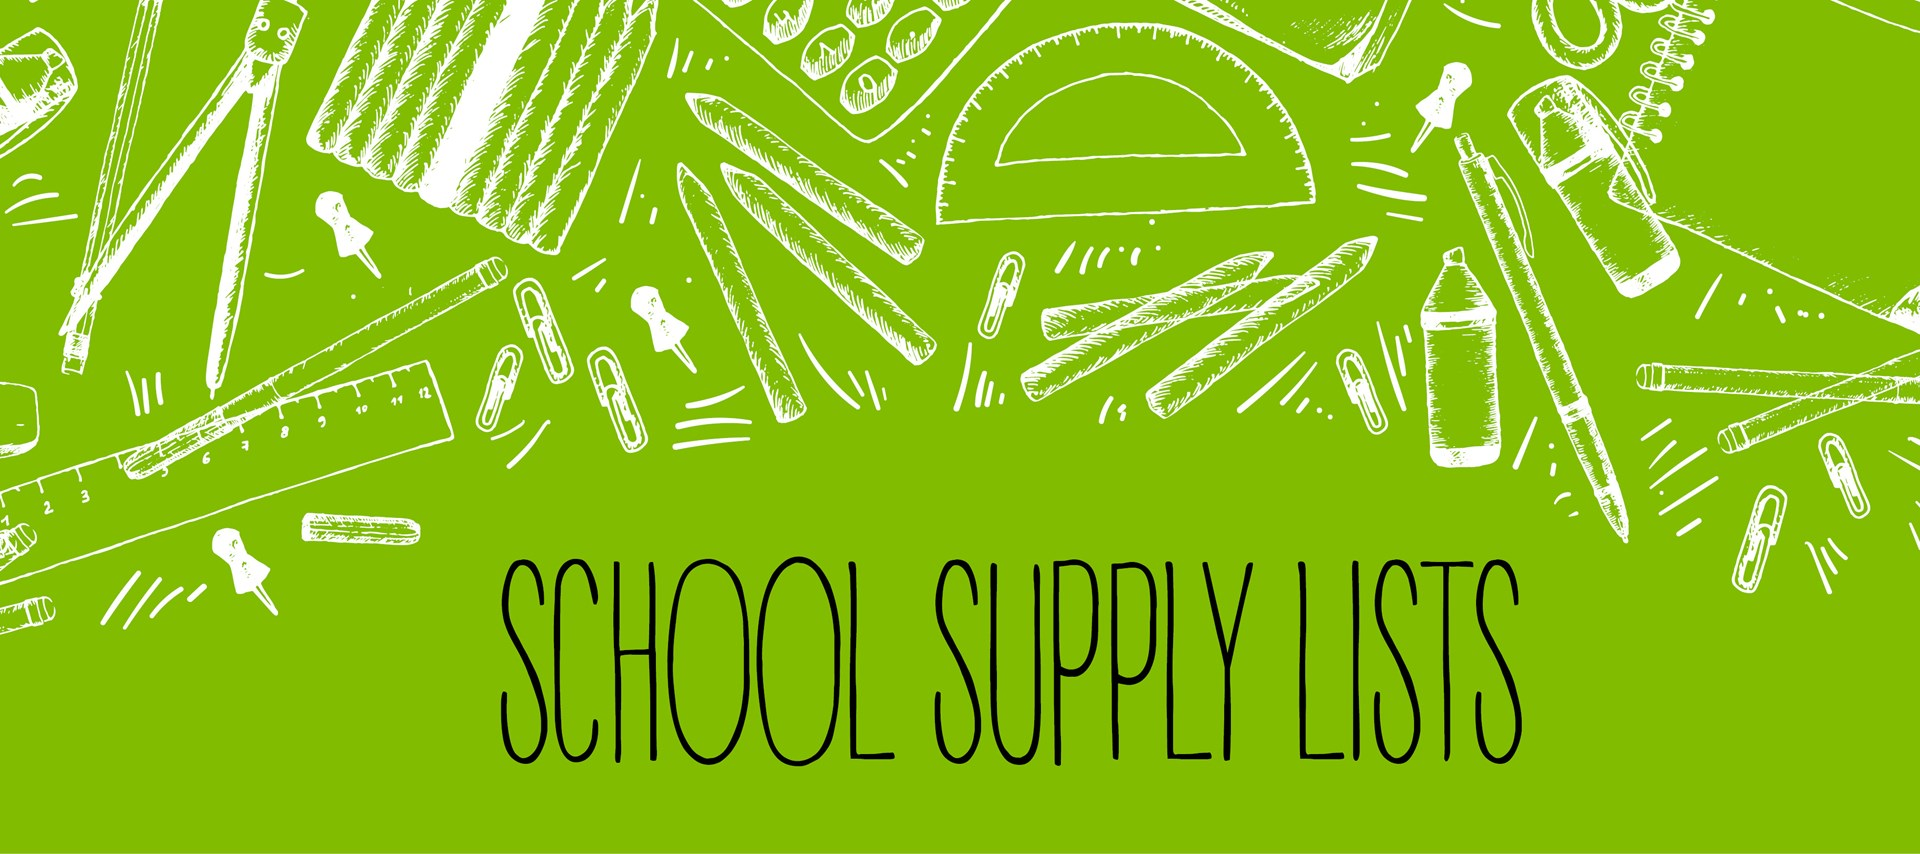 James L. Alexander School Supply List